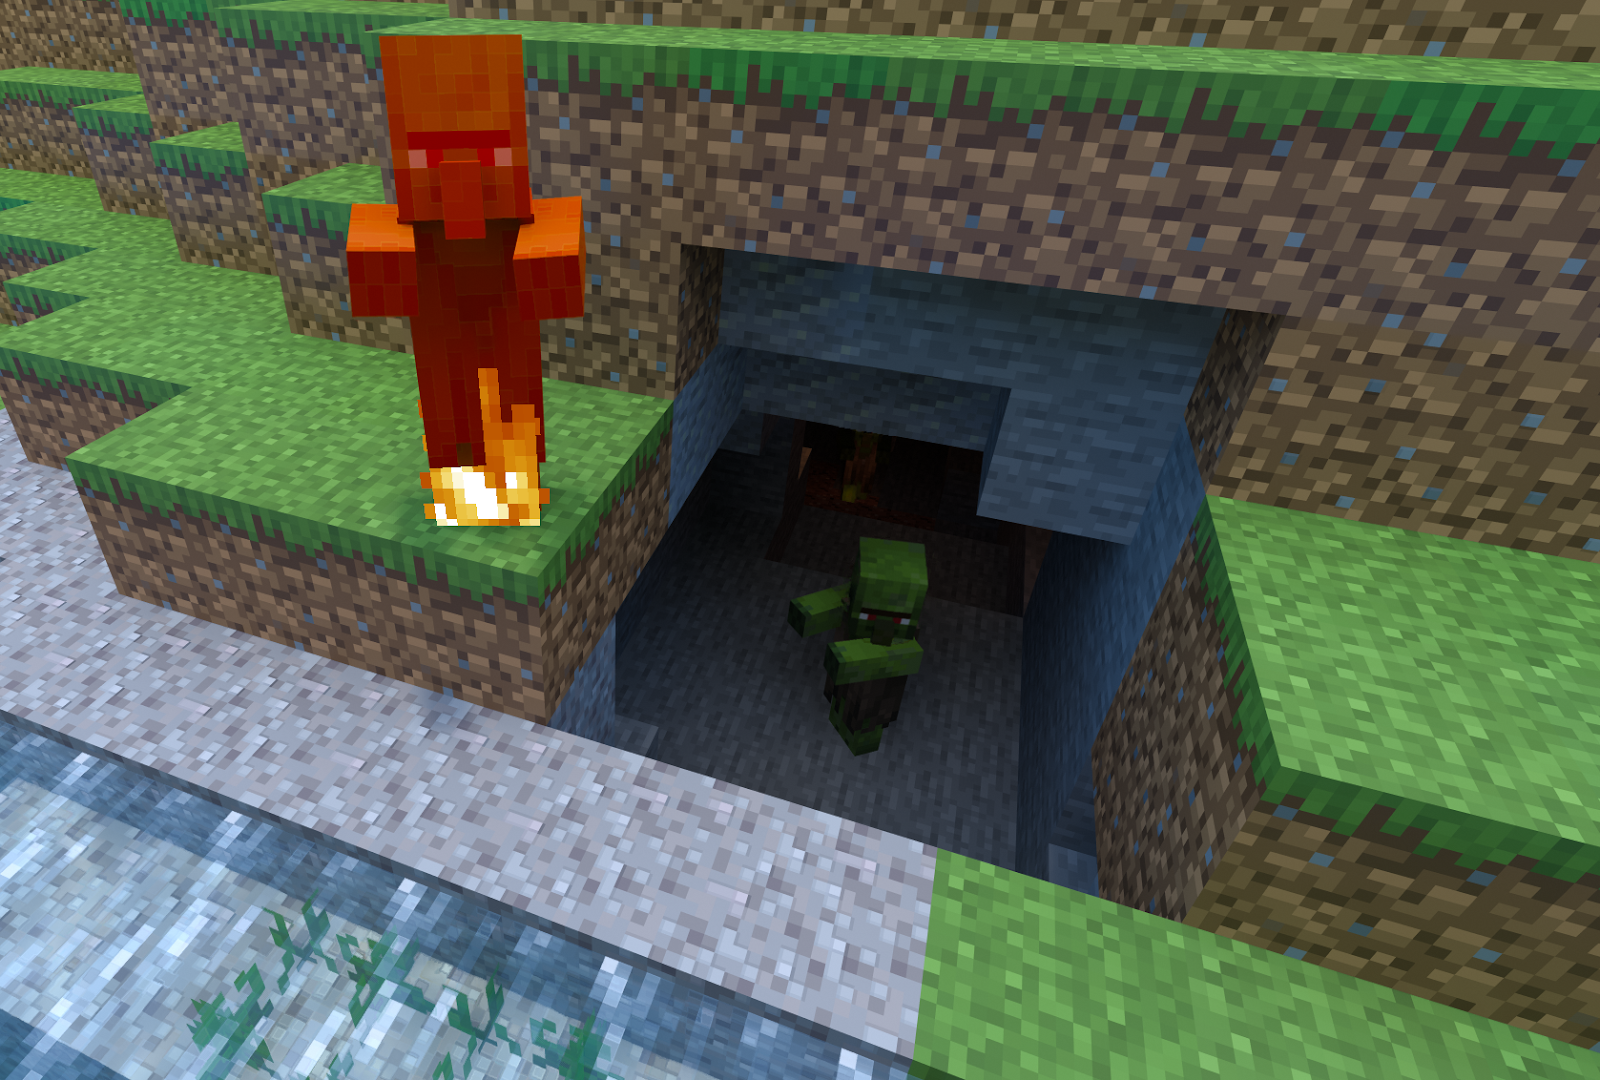 Two zombies, one inside a natural cave, the other one exposed to the sunlight and burning.